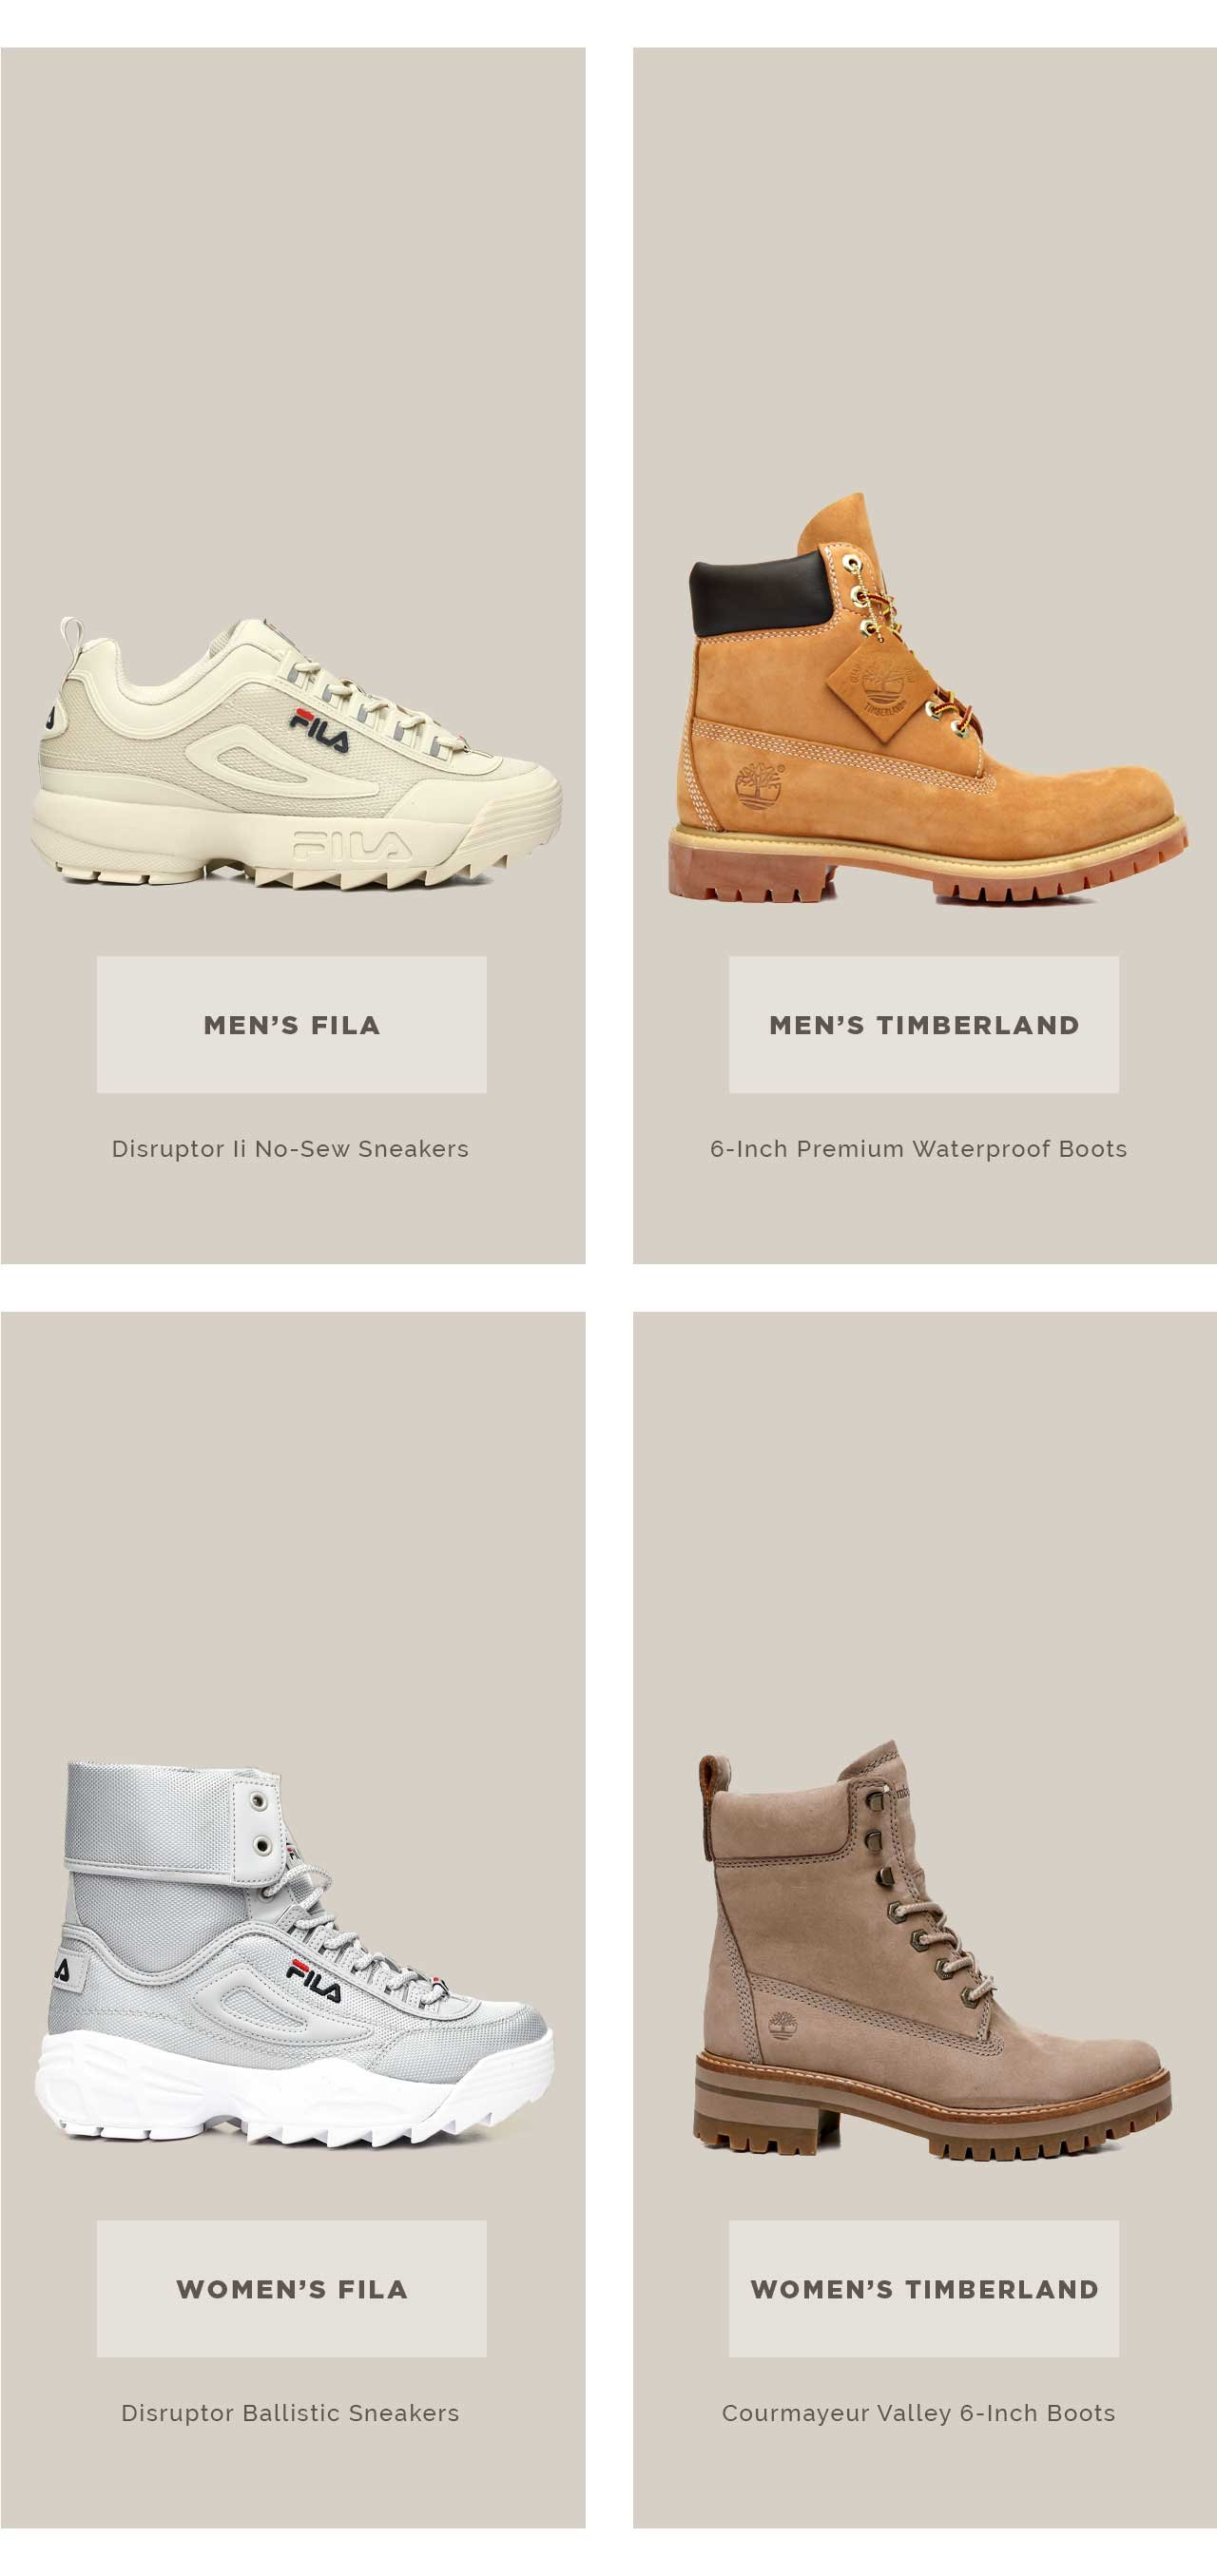 Shop New Sneakers and Boots at DrJays.com